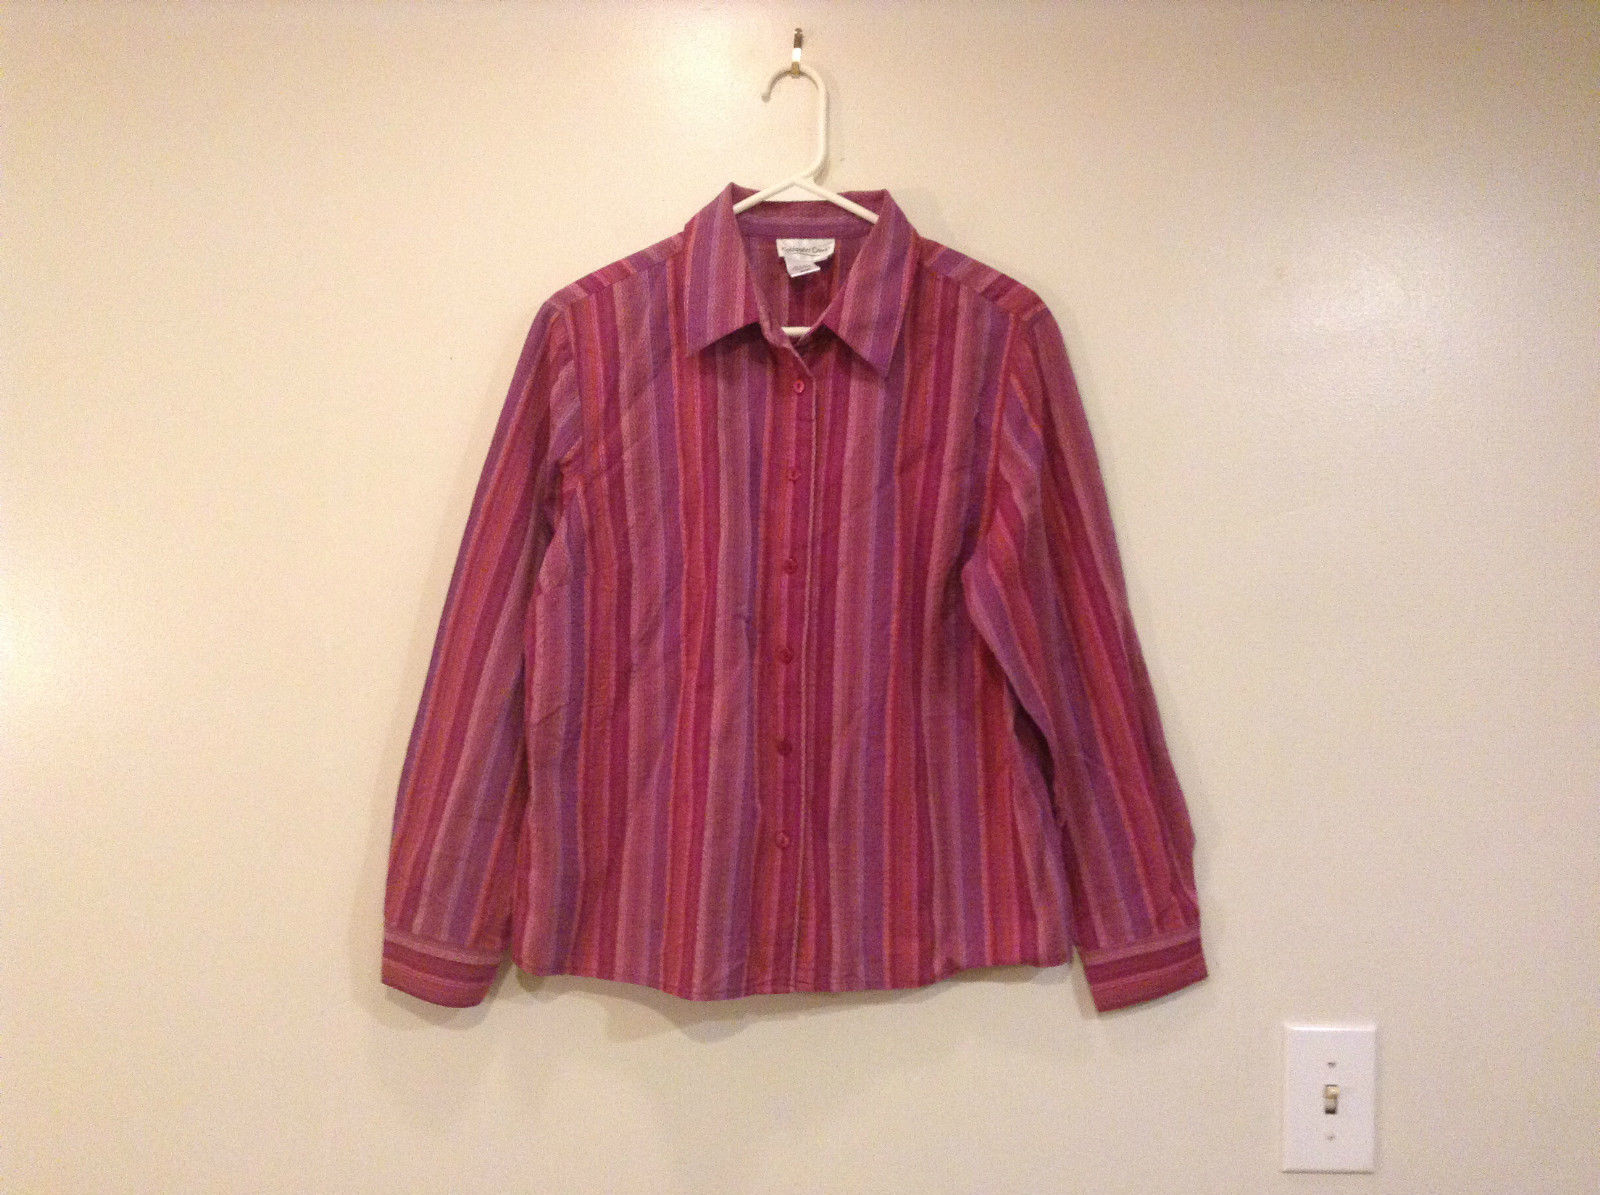 Dark Light Pink Violet Orange Lavender Button Up Coldwater Creek Shirt Size PL